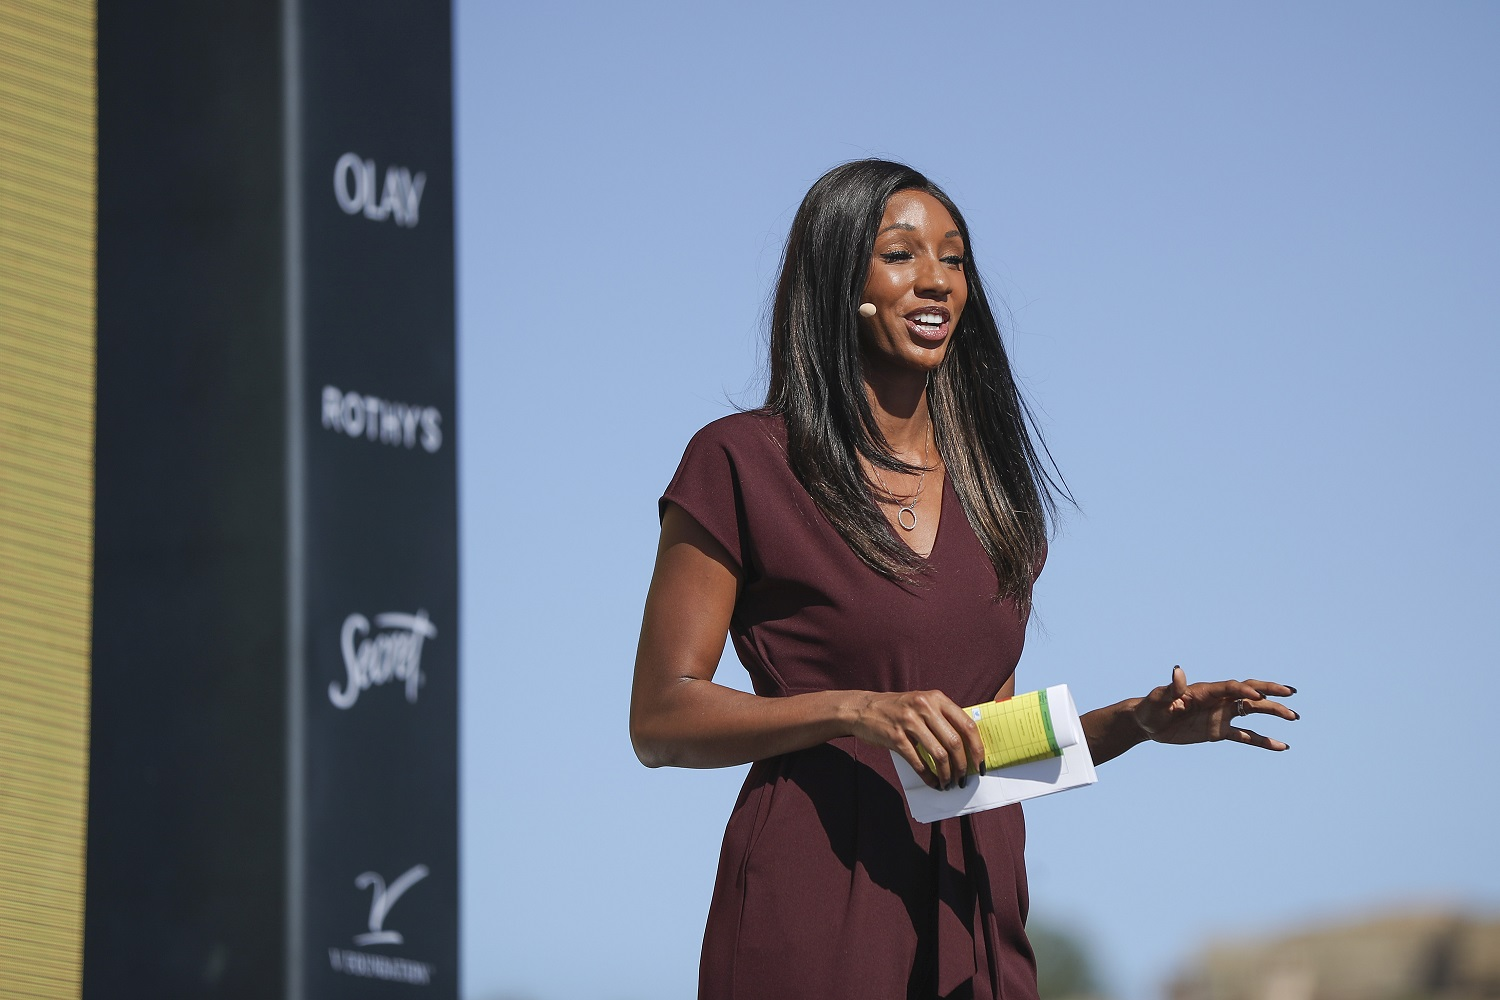 ESPN sideline reporter and host Maria Taylor says she loves the chicken wings at a well-known Atlanta strip club.